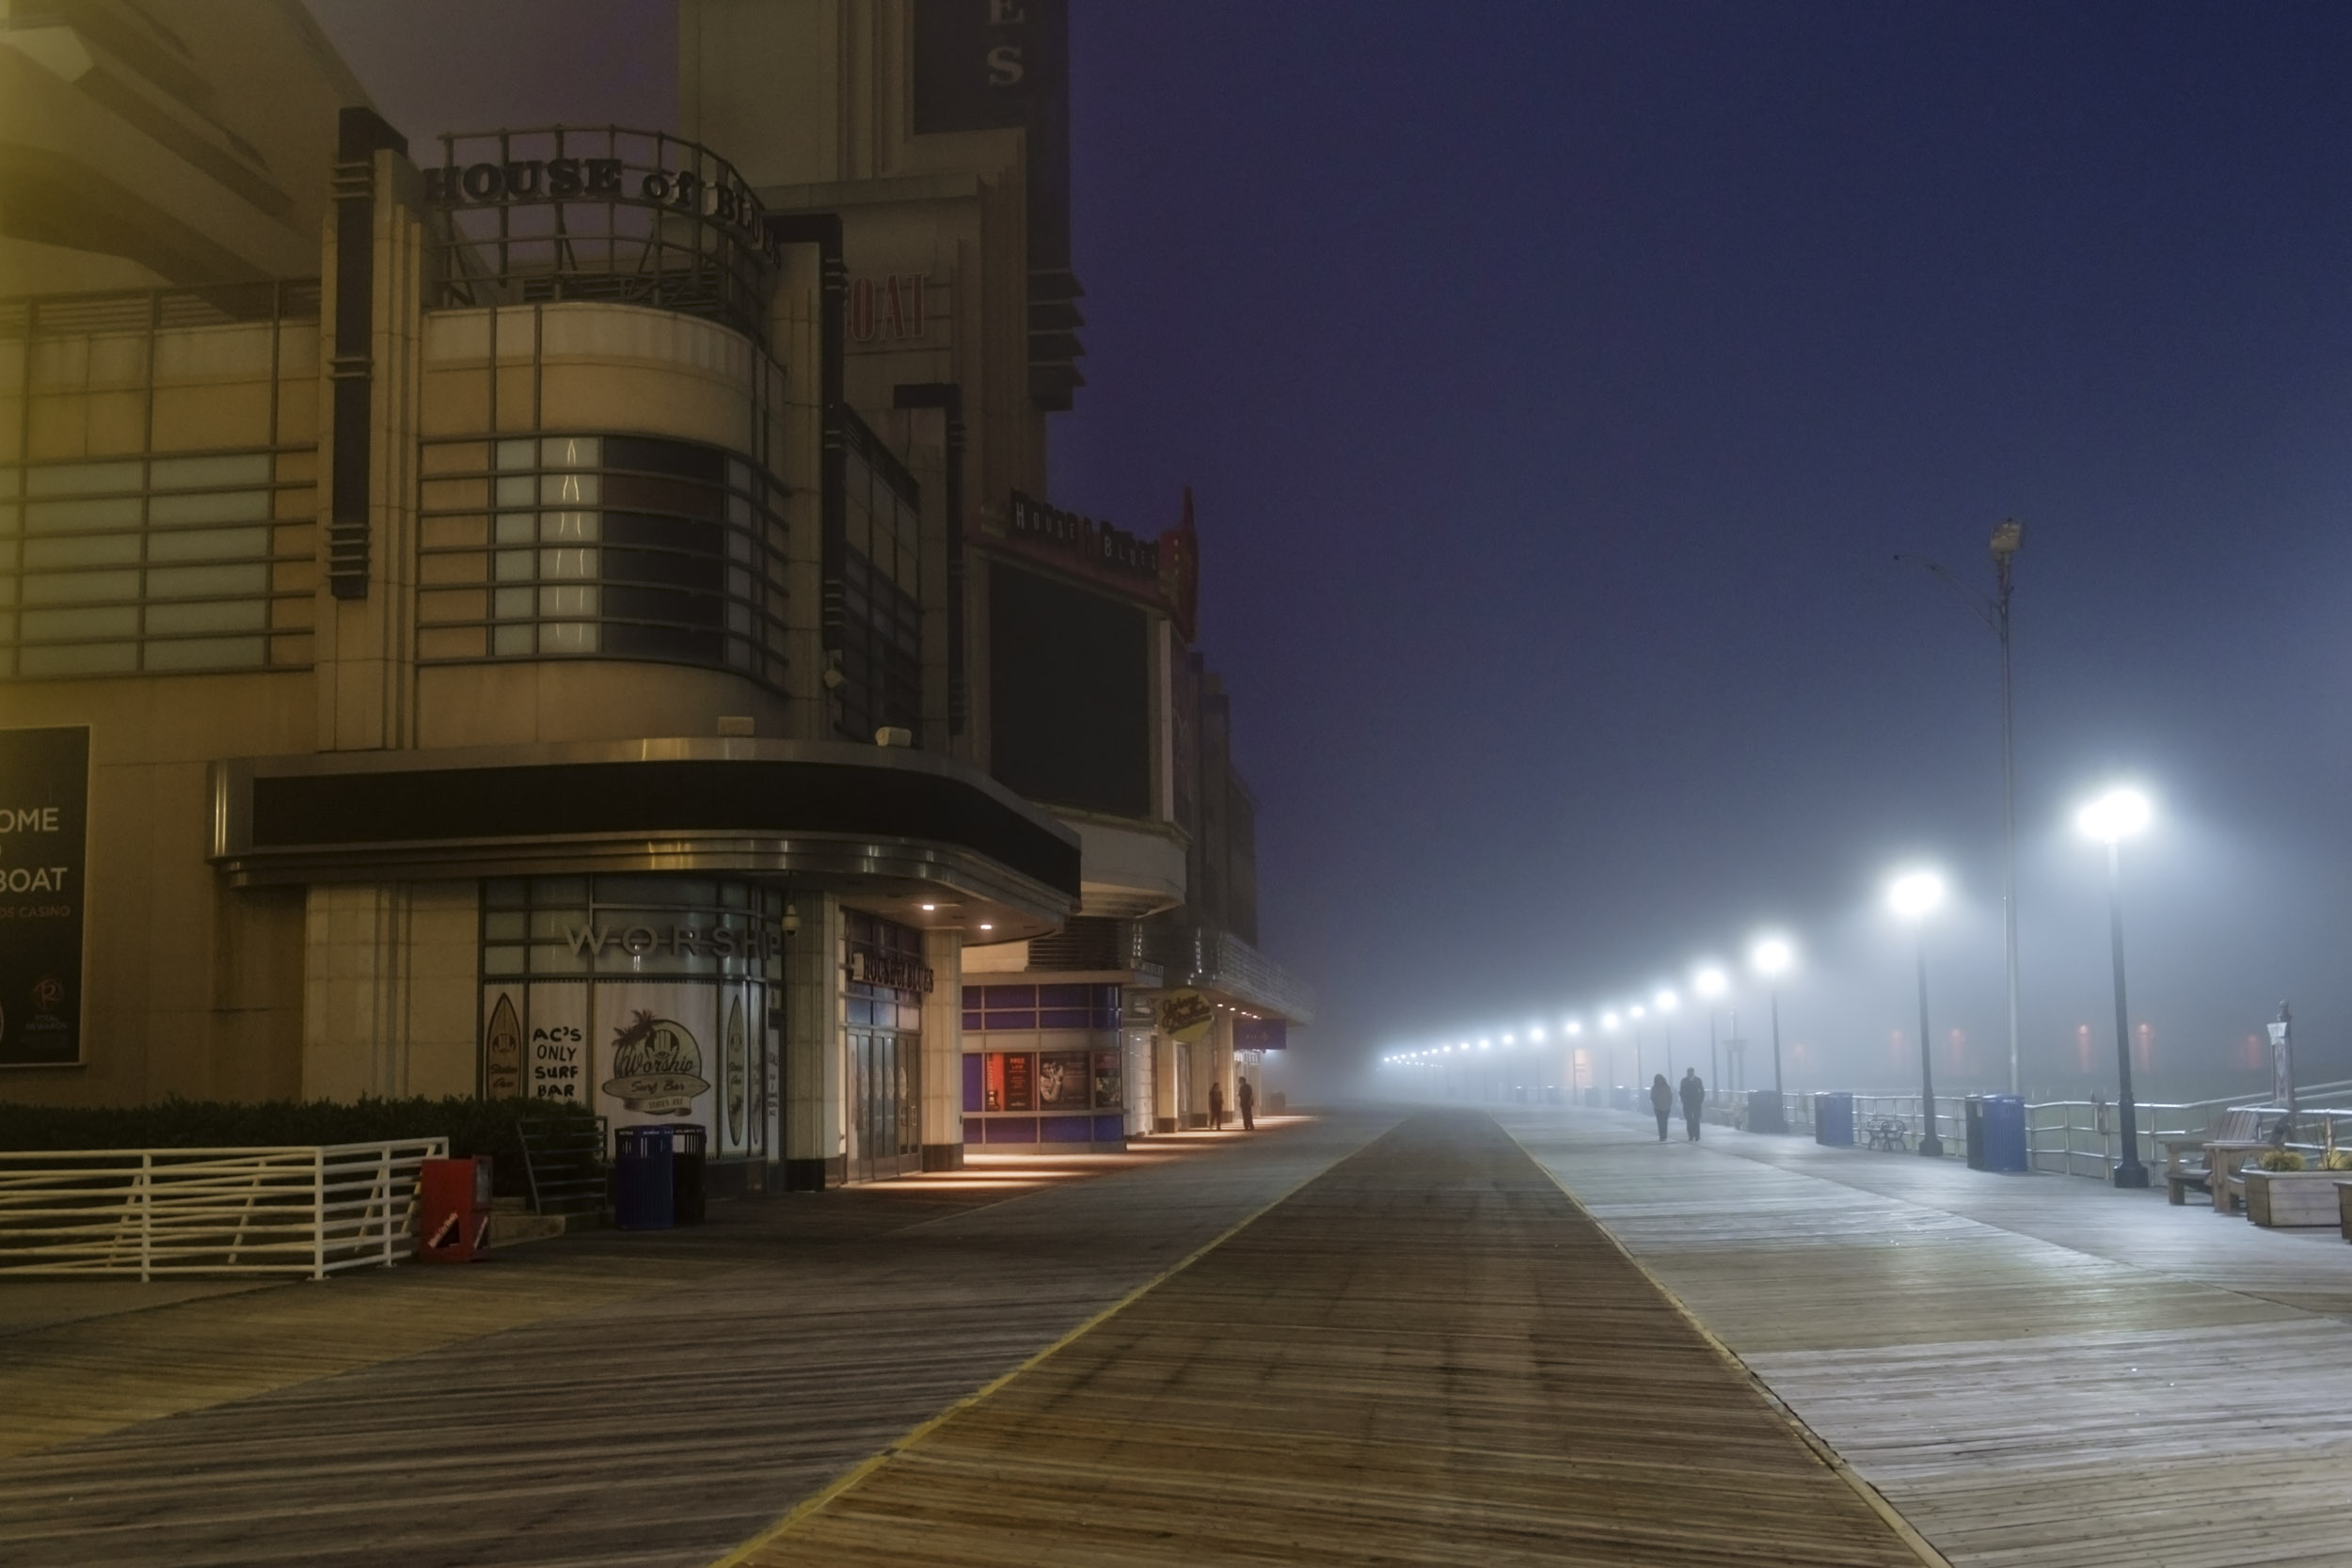 jean_ross_atlantic_city-12.jpg